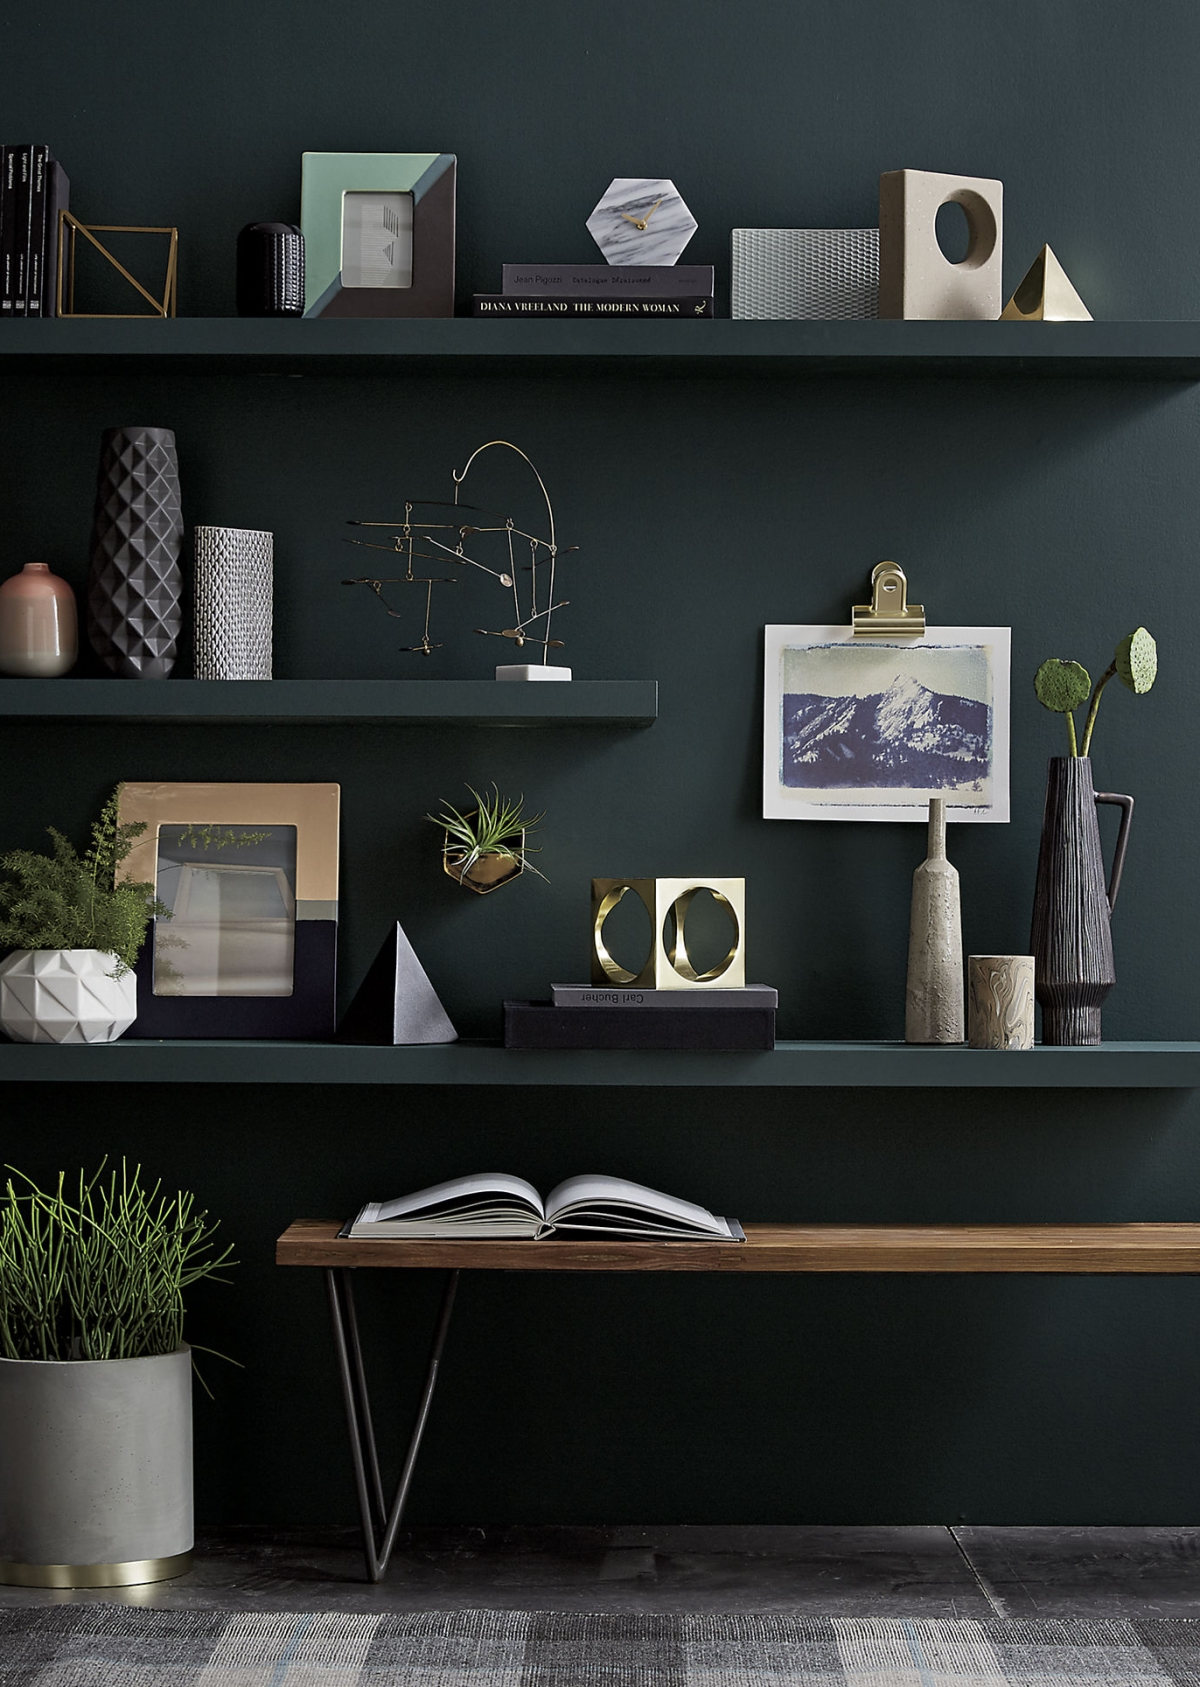 Shelving and grey-green walls designed by CB2